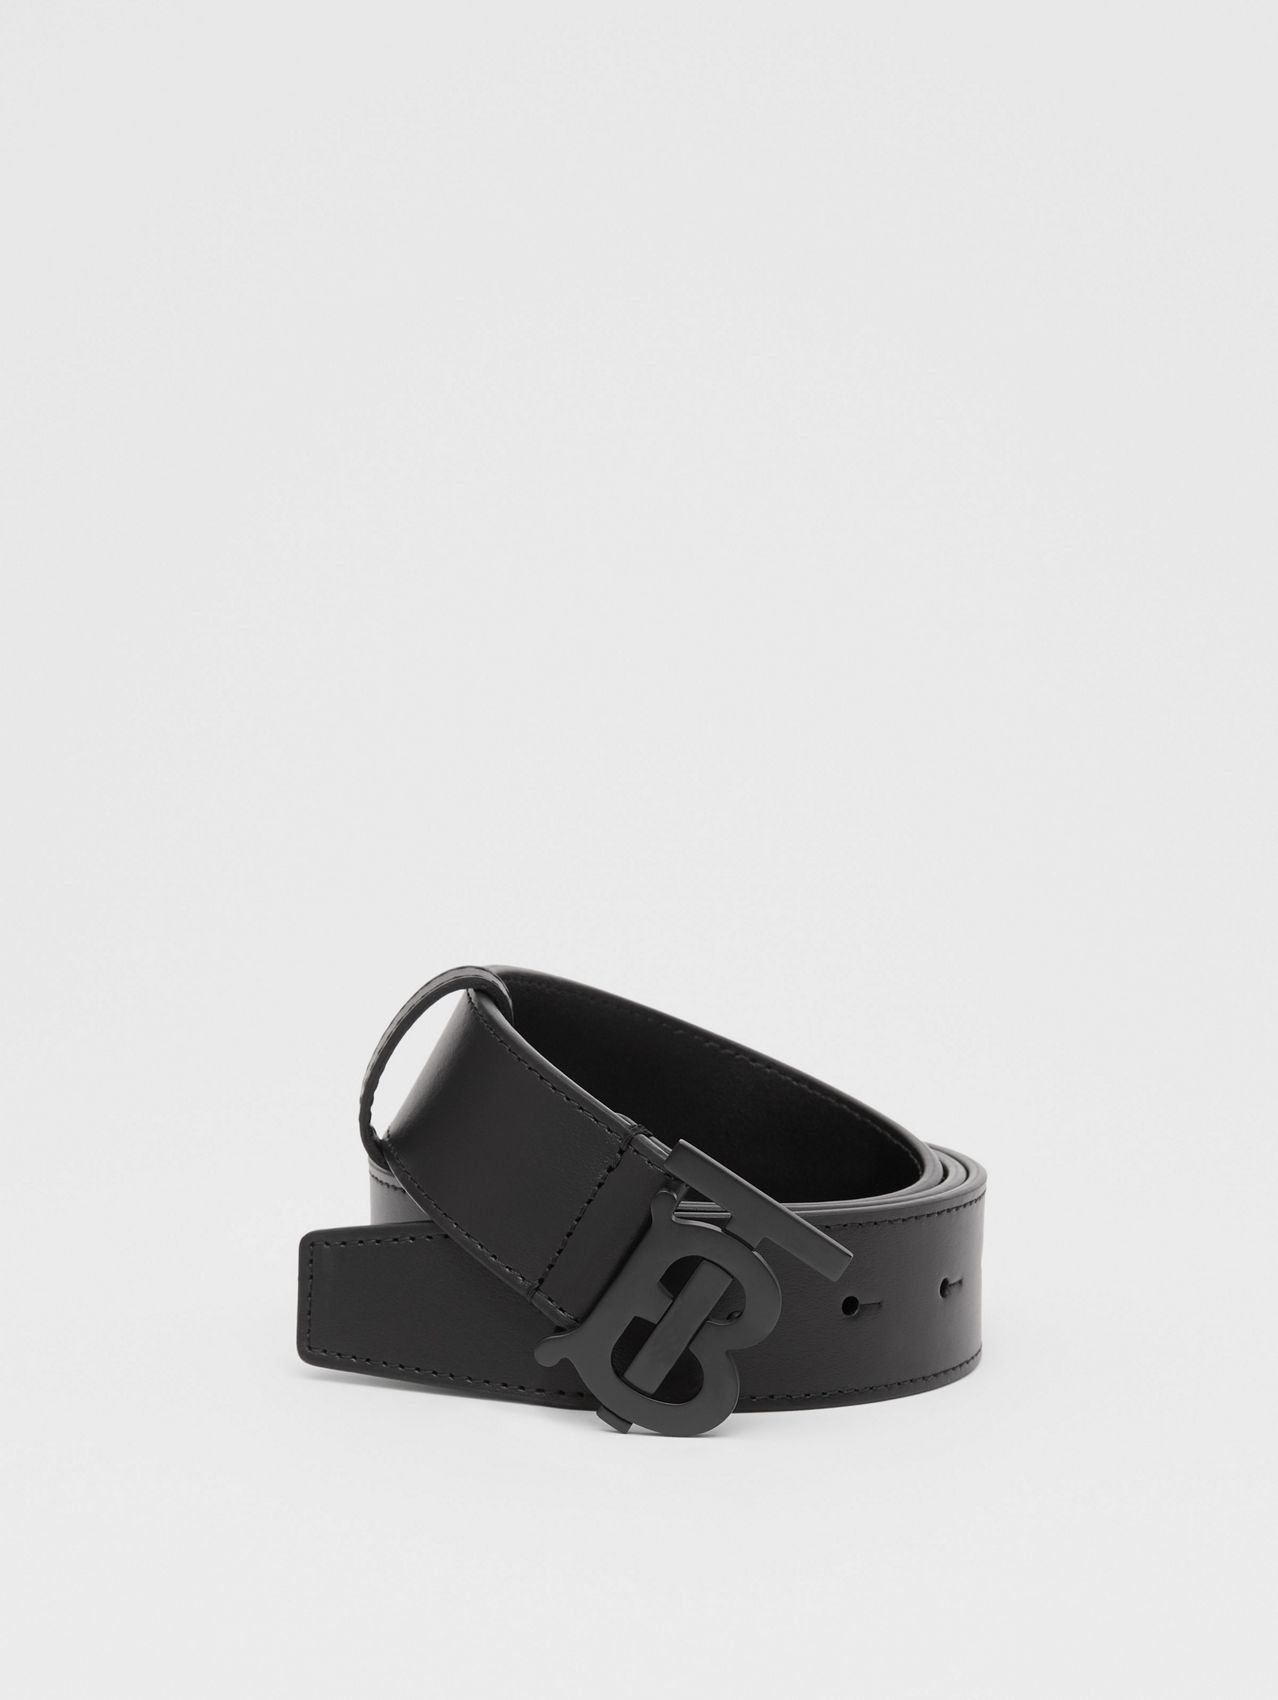 Matte Monogram Motif Leather Belt in Black